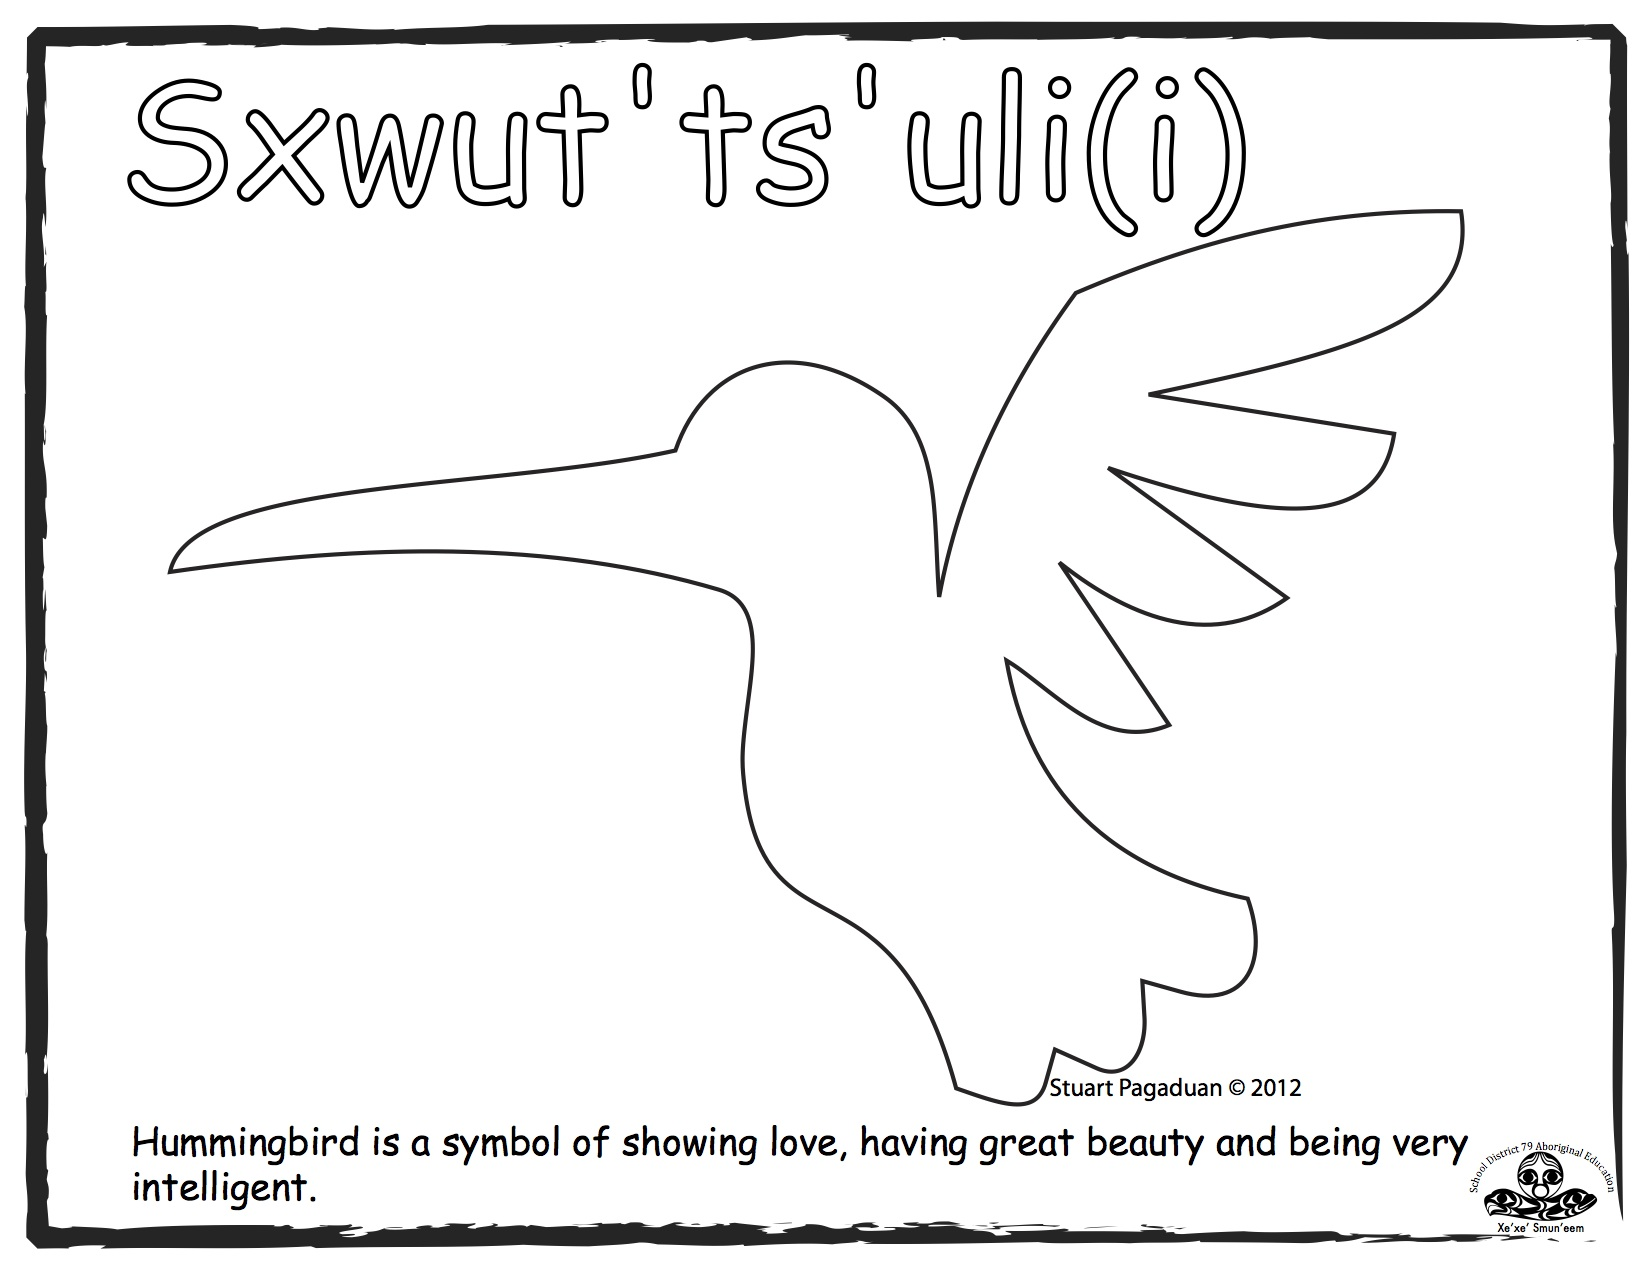 hummingbird-sxwuttsulii-outline